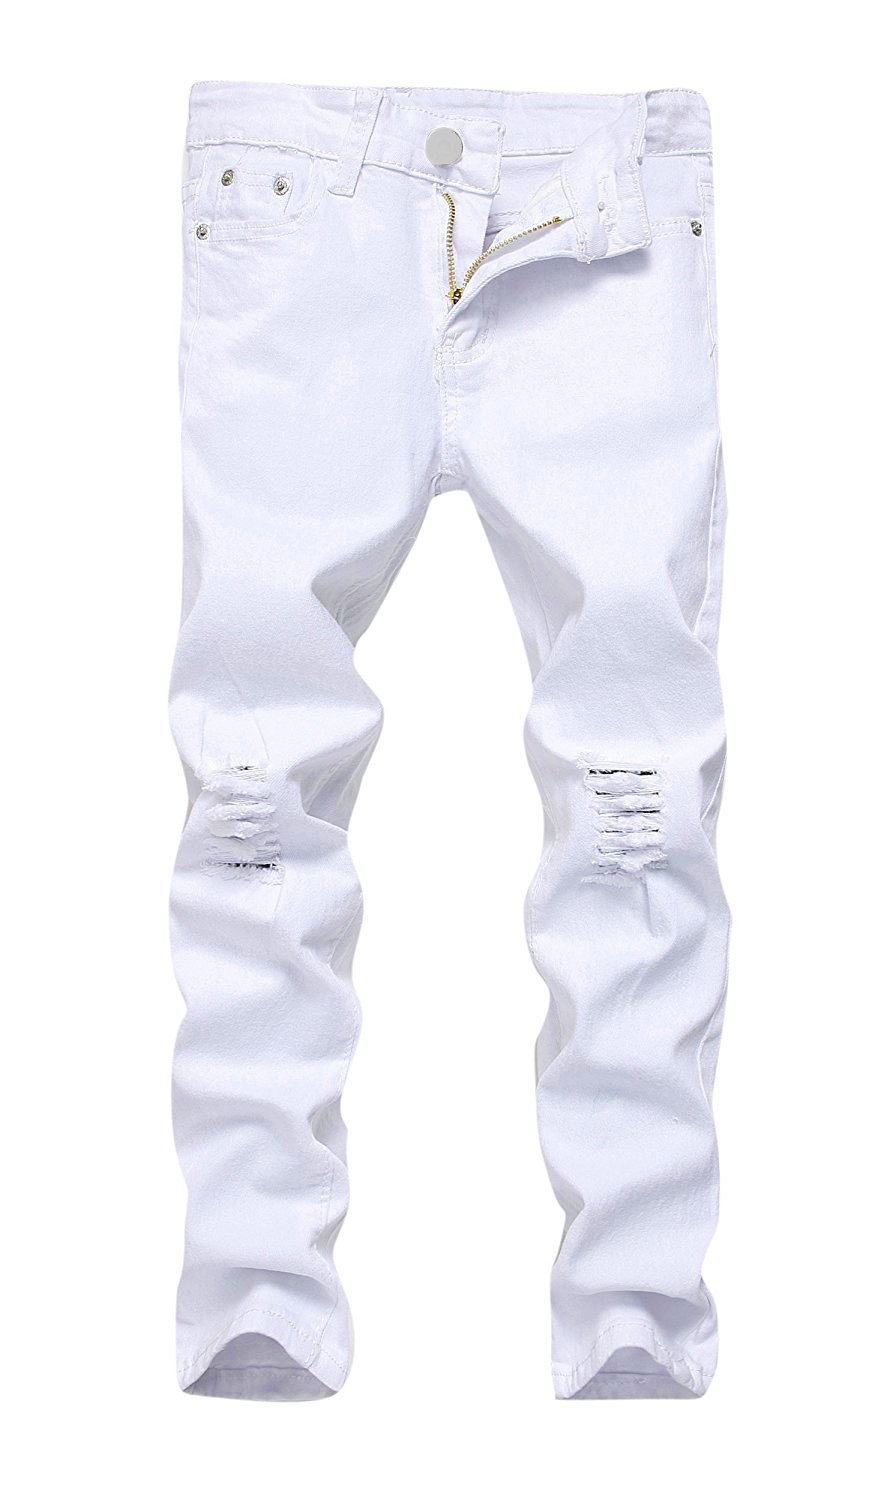 MEIKESEN Boy's Fashion Skinny Fit Ripped Distressed Stretch Slim Denim Jeans With Holes White Size 16